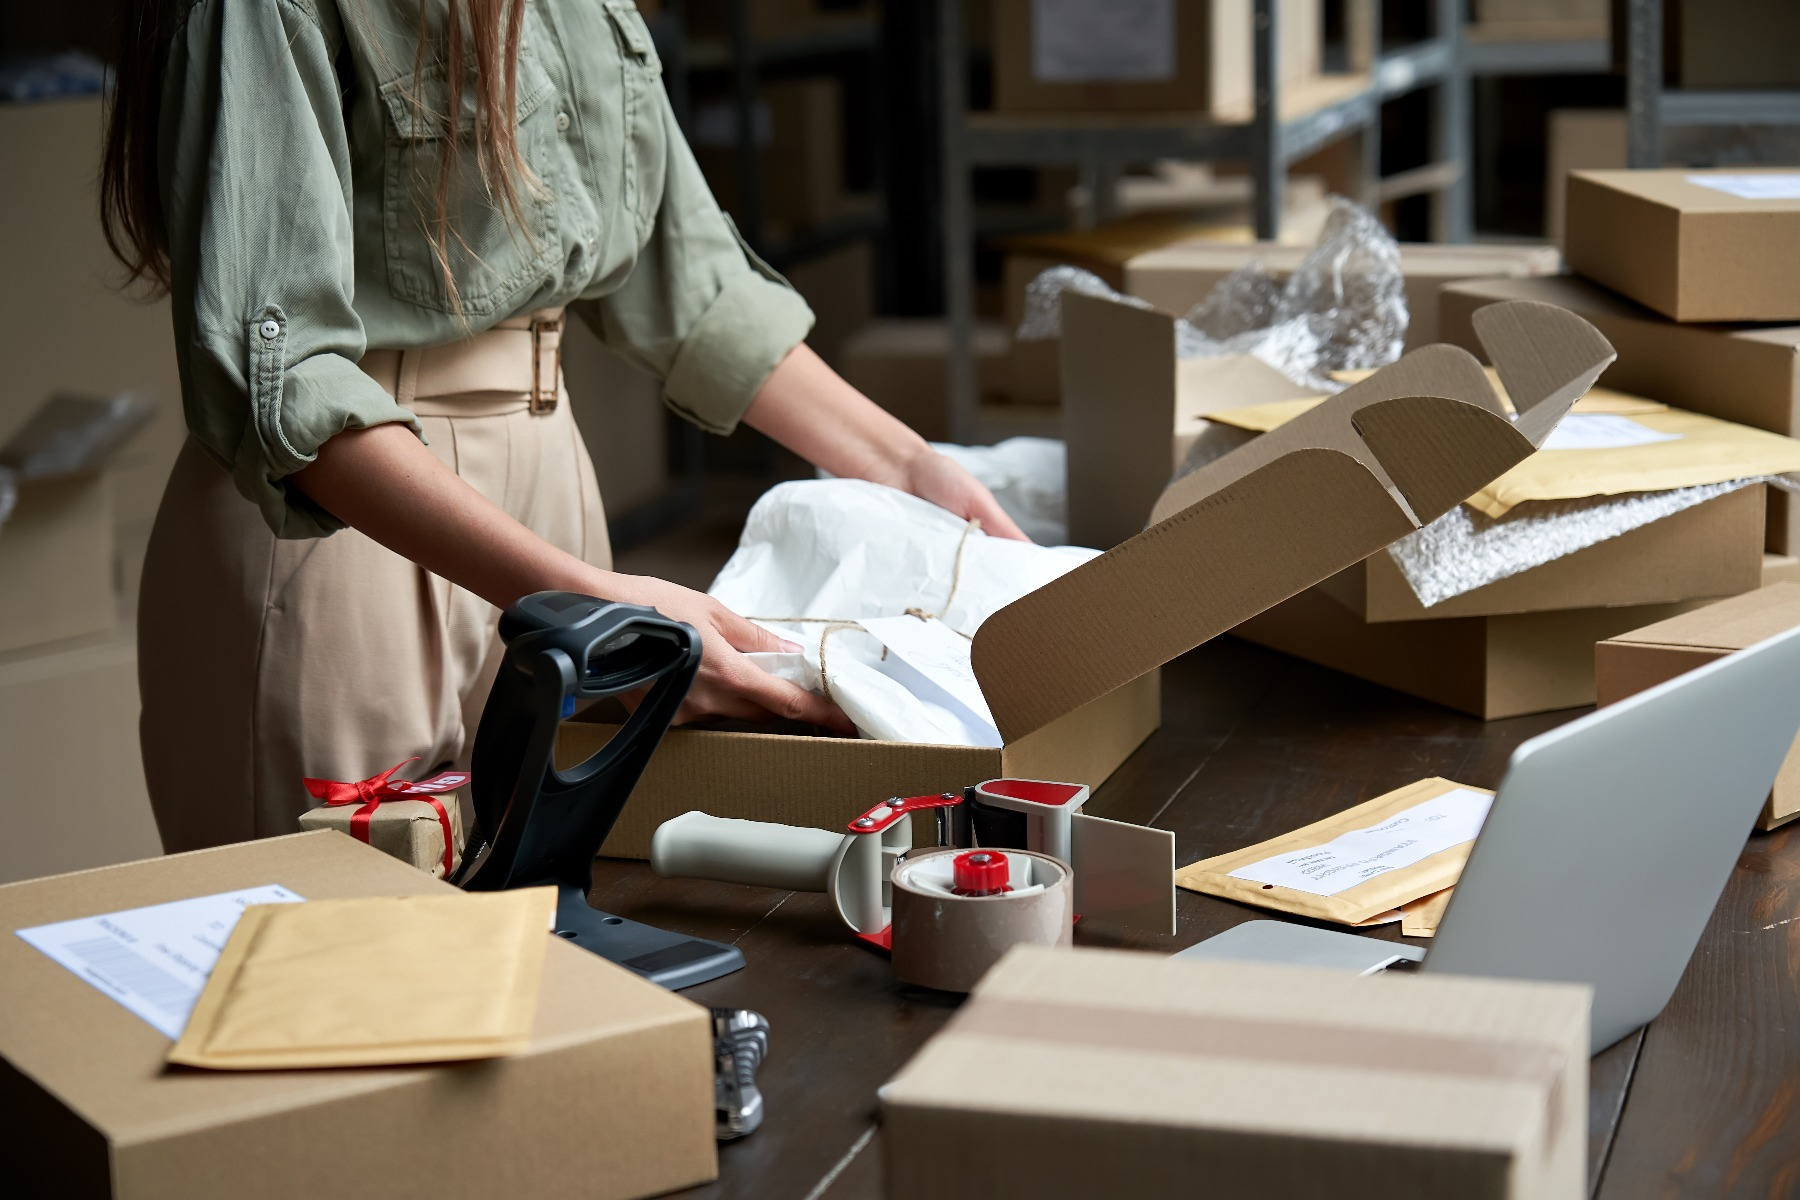 woman placing item wrapped in tissue paper into corrugated box with packaging supplies on table around it